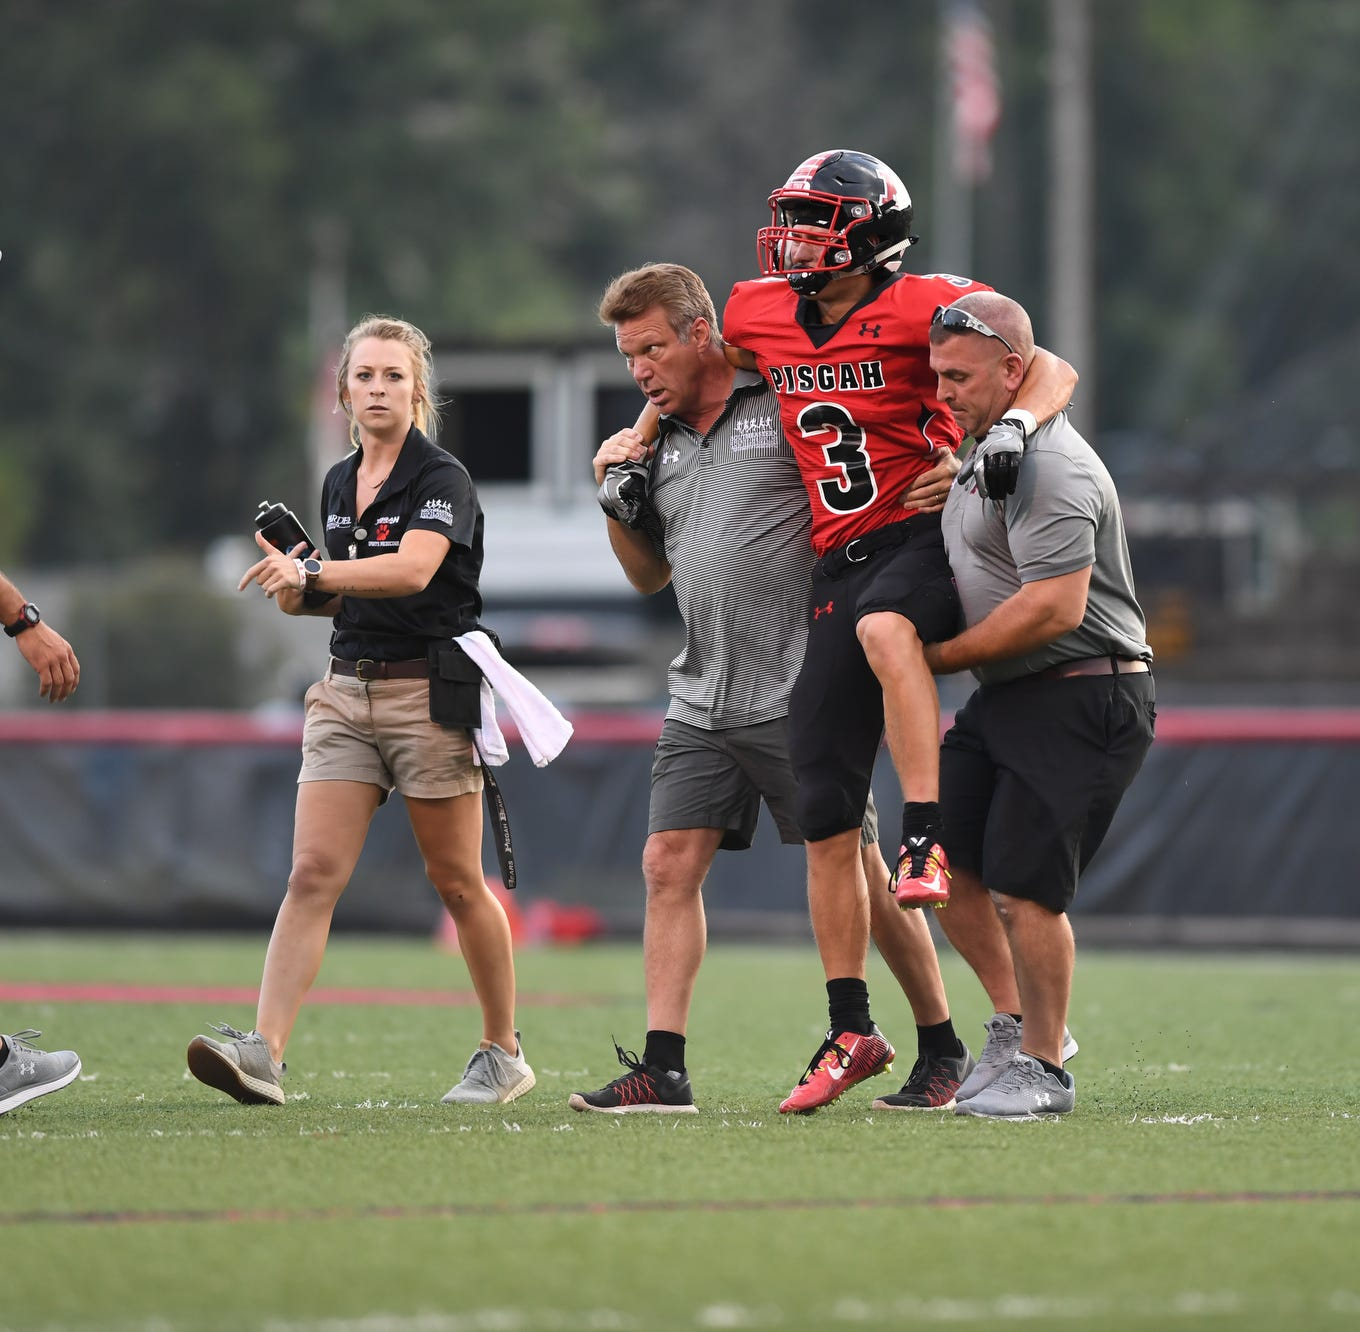 Pisgah's Wike 'day-to-day' after Week 1 injury